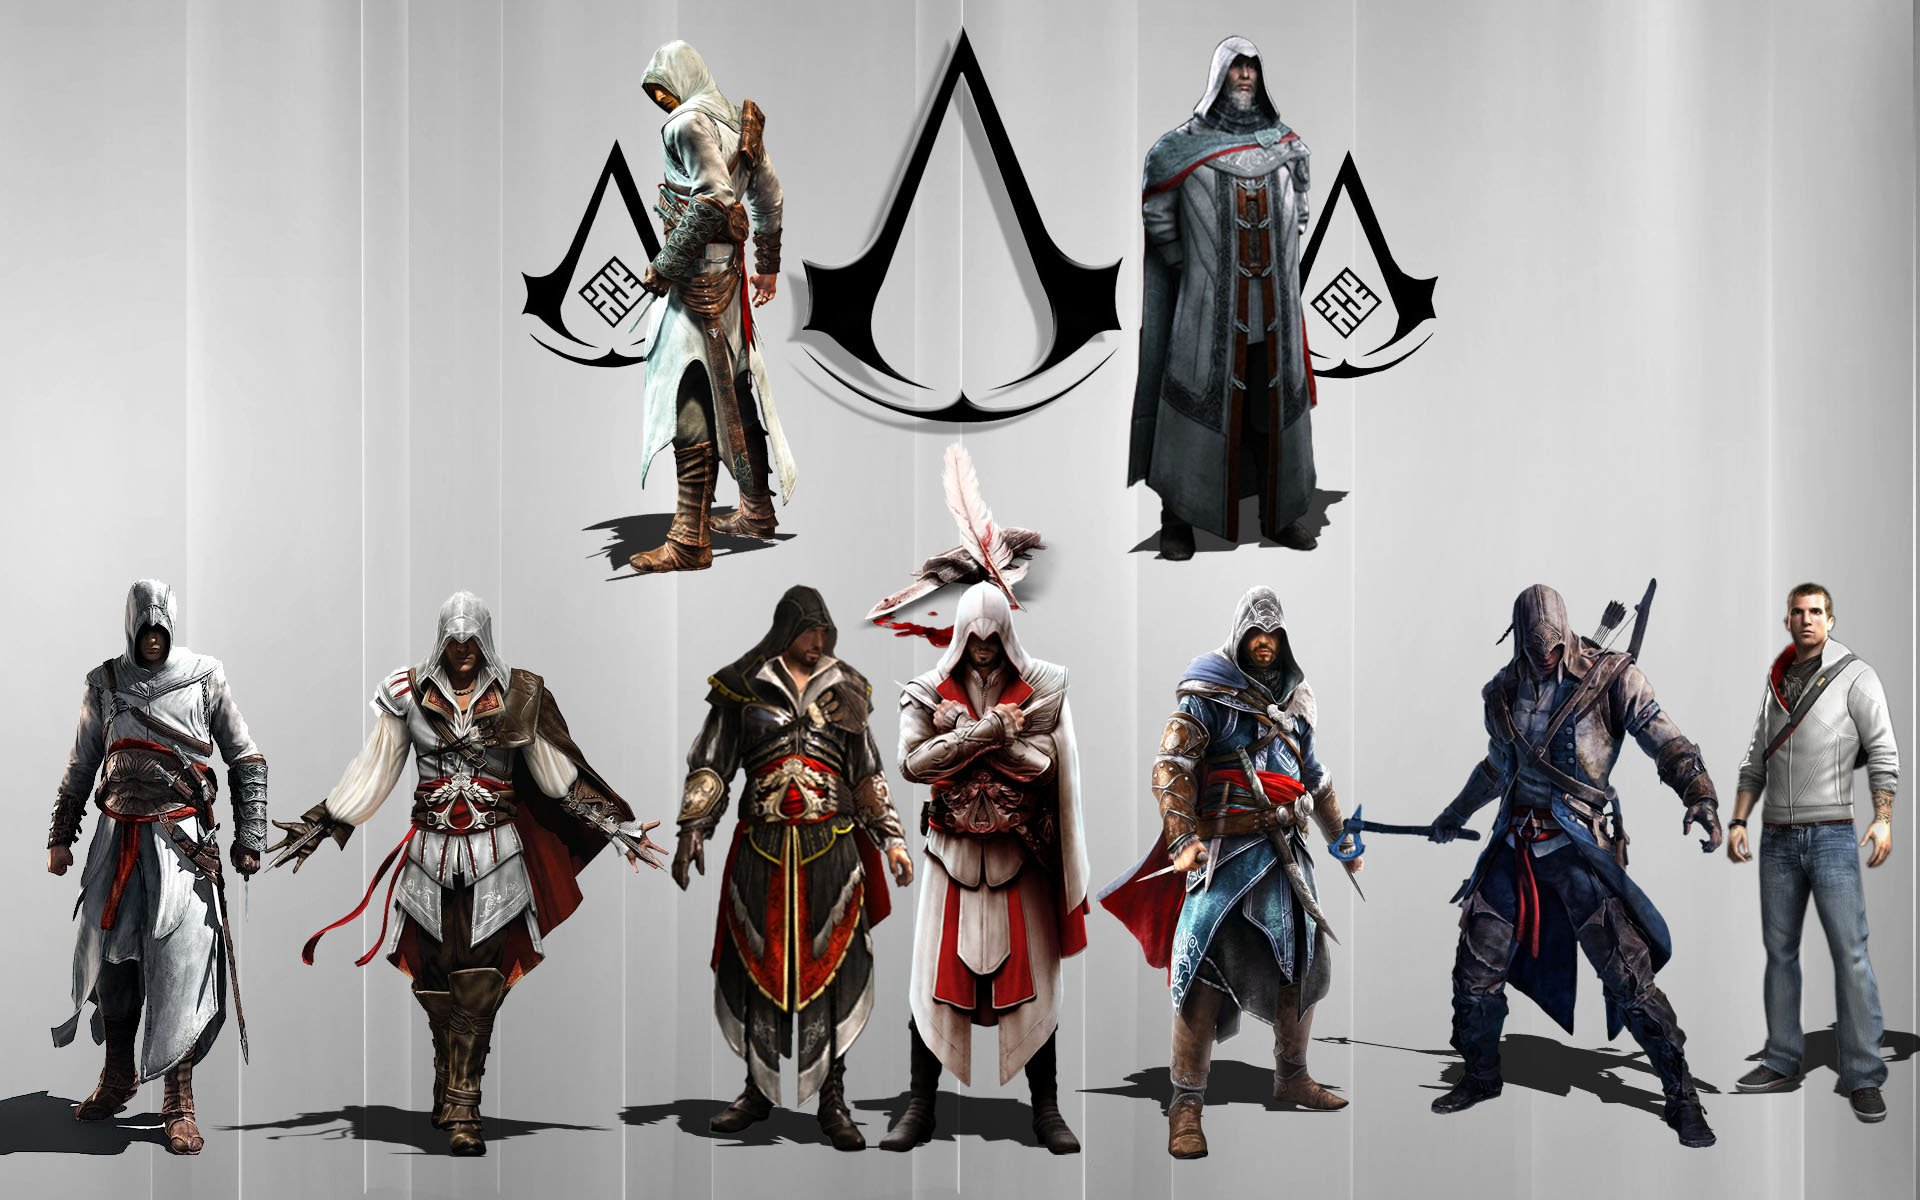 Assassins Creed Altair Ezio Y Desmond 1920x1200 Wallpaper